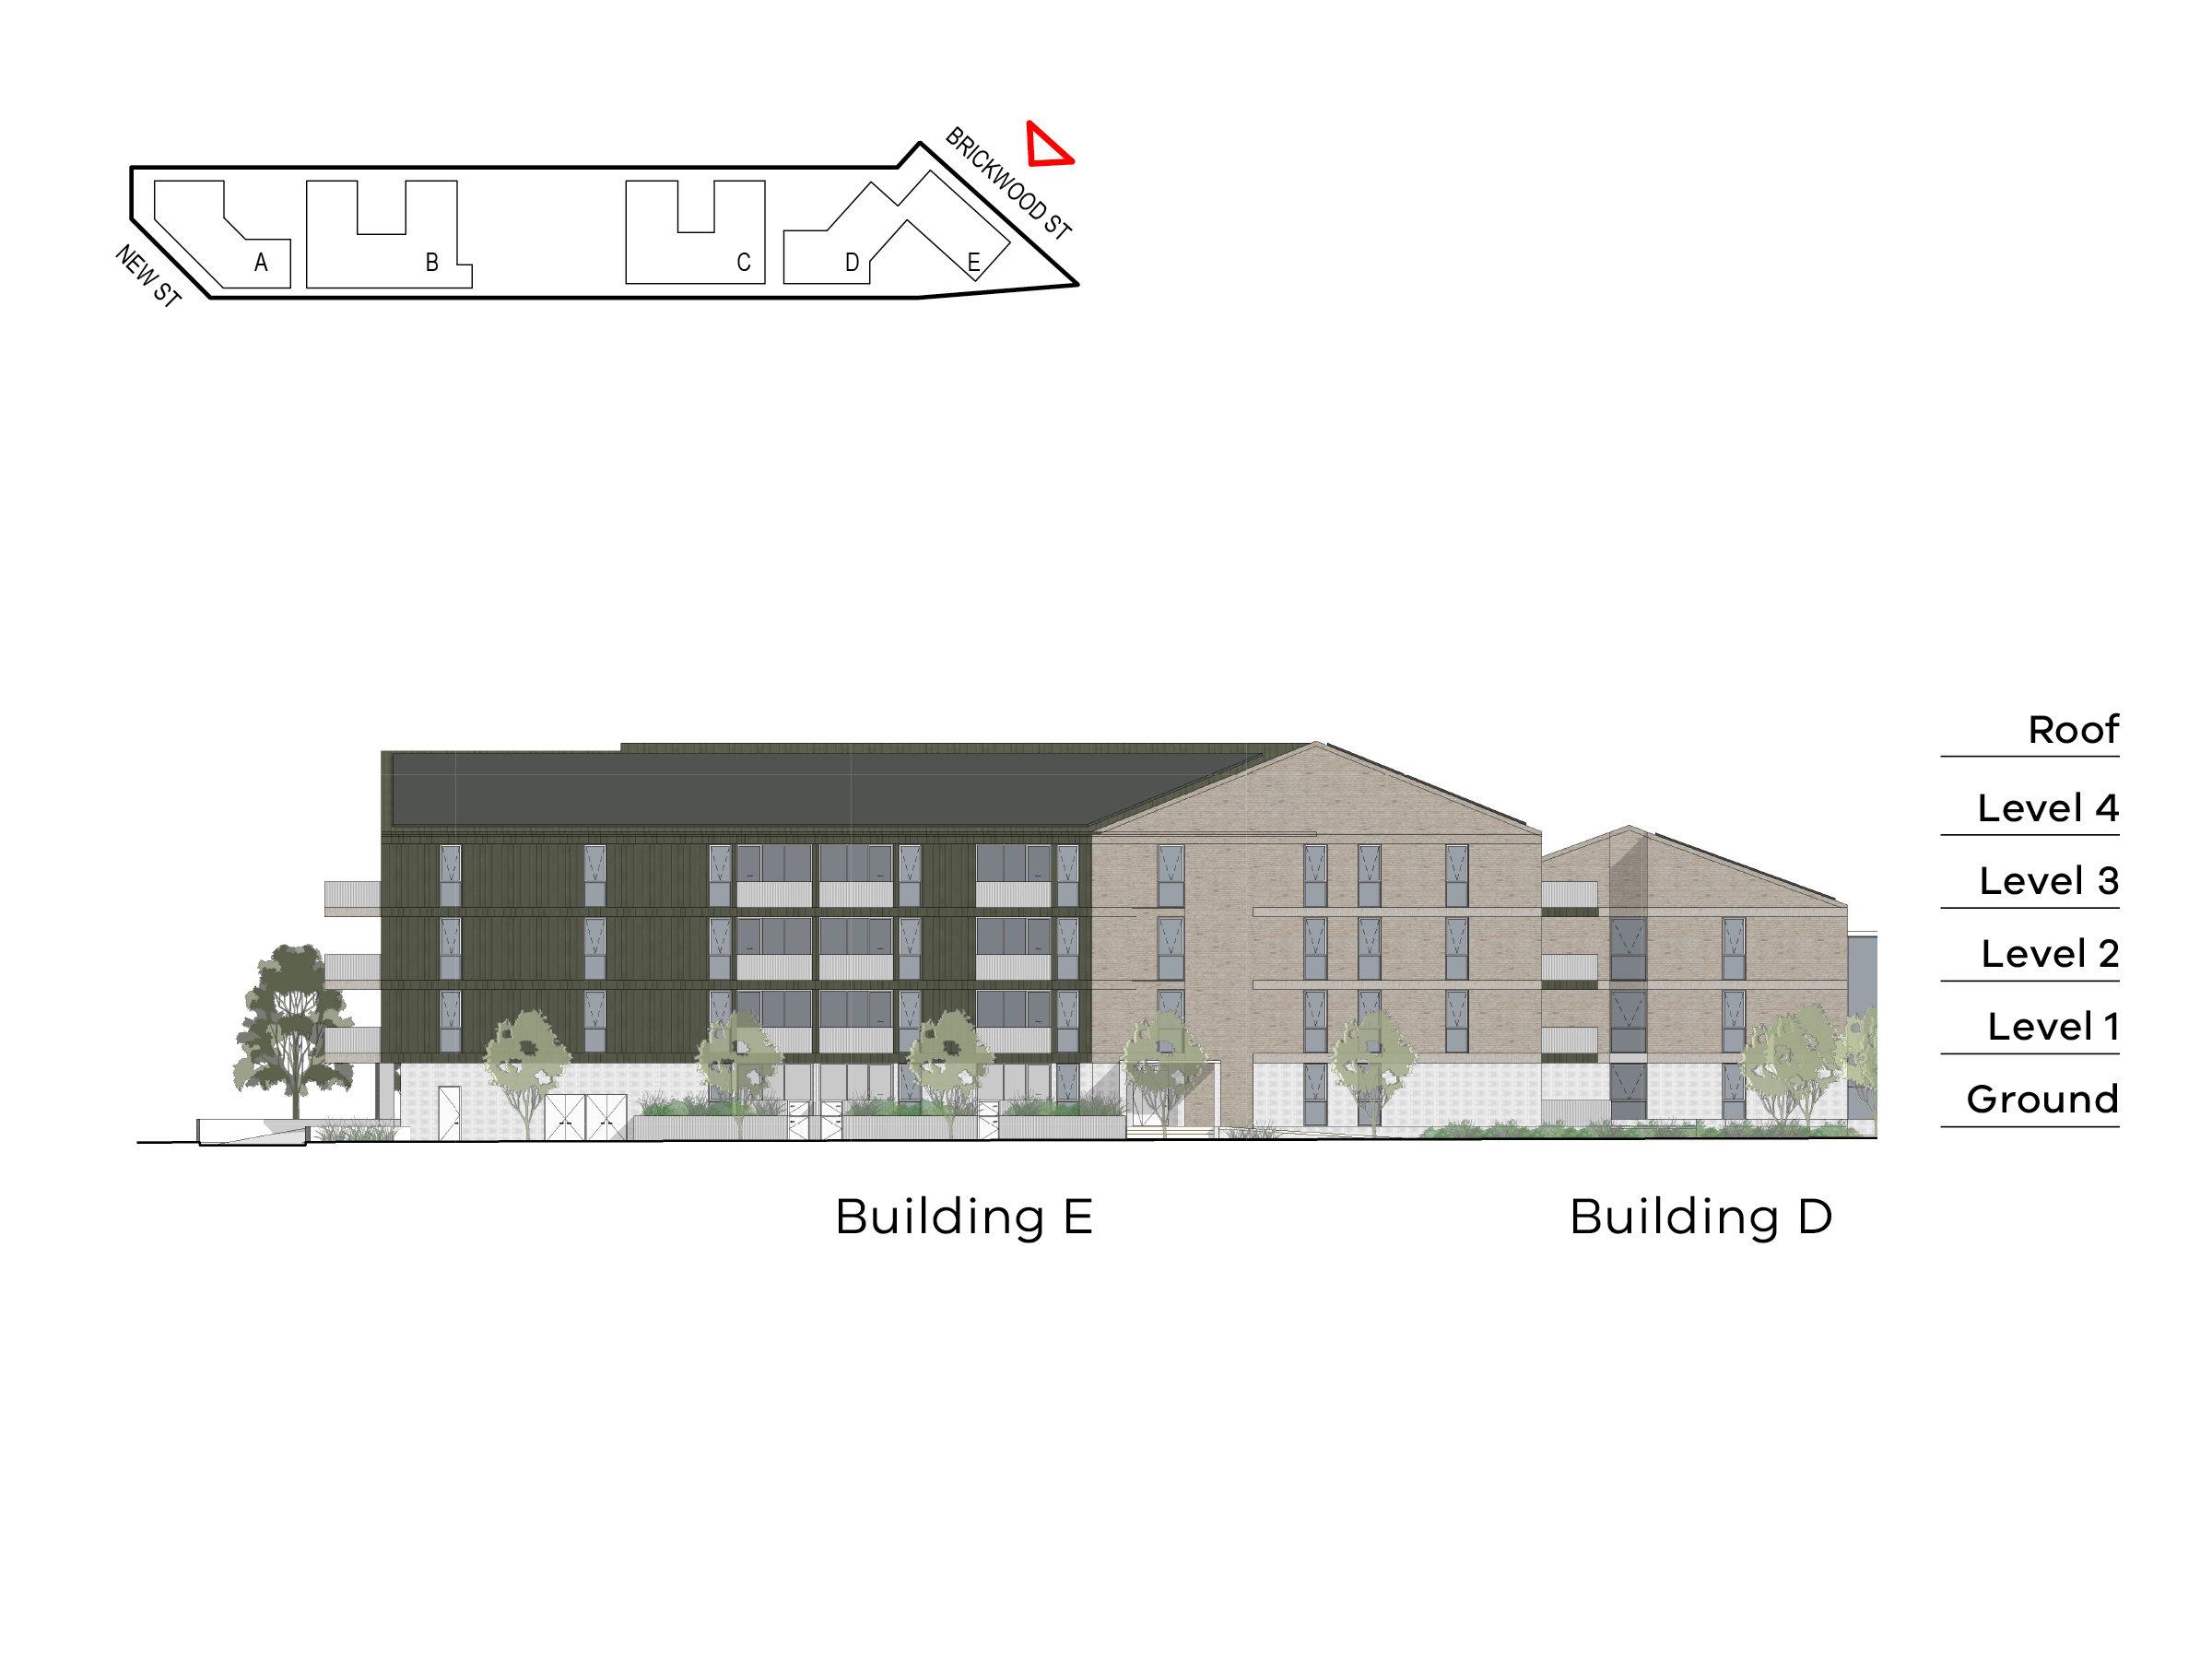 Diagram showing the heights of buildings D and E as seen from Brickwood Street. Building D includes ground level, level 1-2 and a roof, building E includes ground level, level 1-3 and a roof.